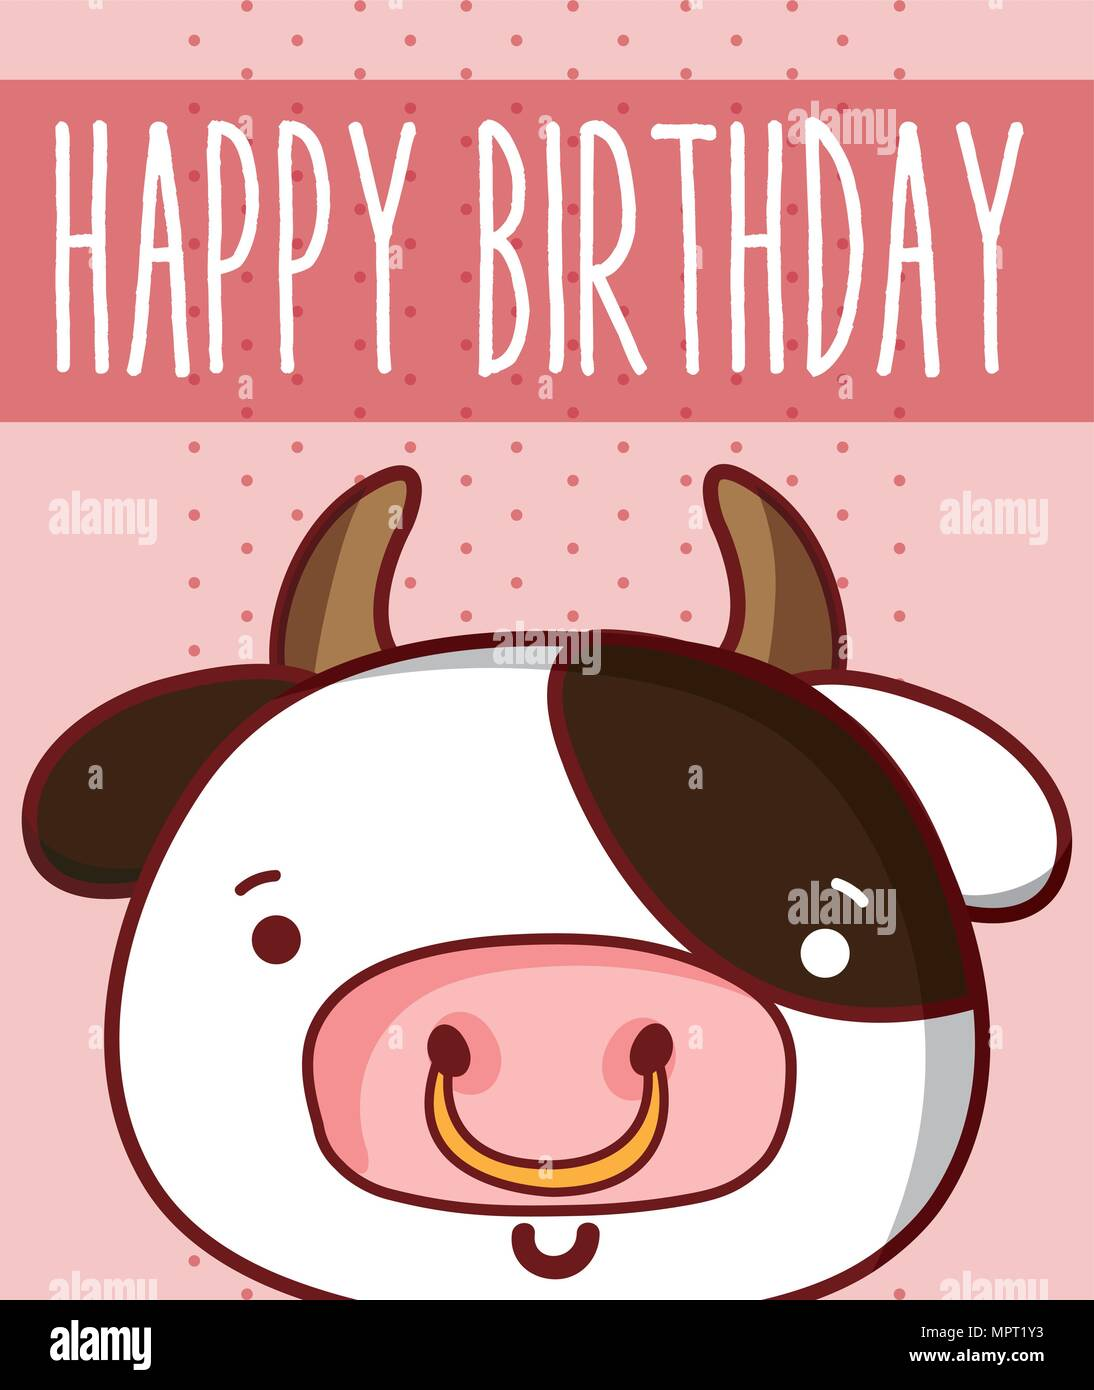 Fantastic Cow In Cute Happy Birthday Card Stock Vector Art Illustration Funny Birthday Cards Online Overcheapnameinfo